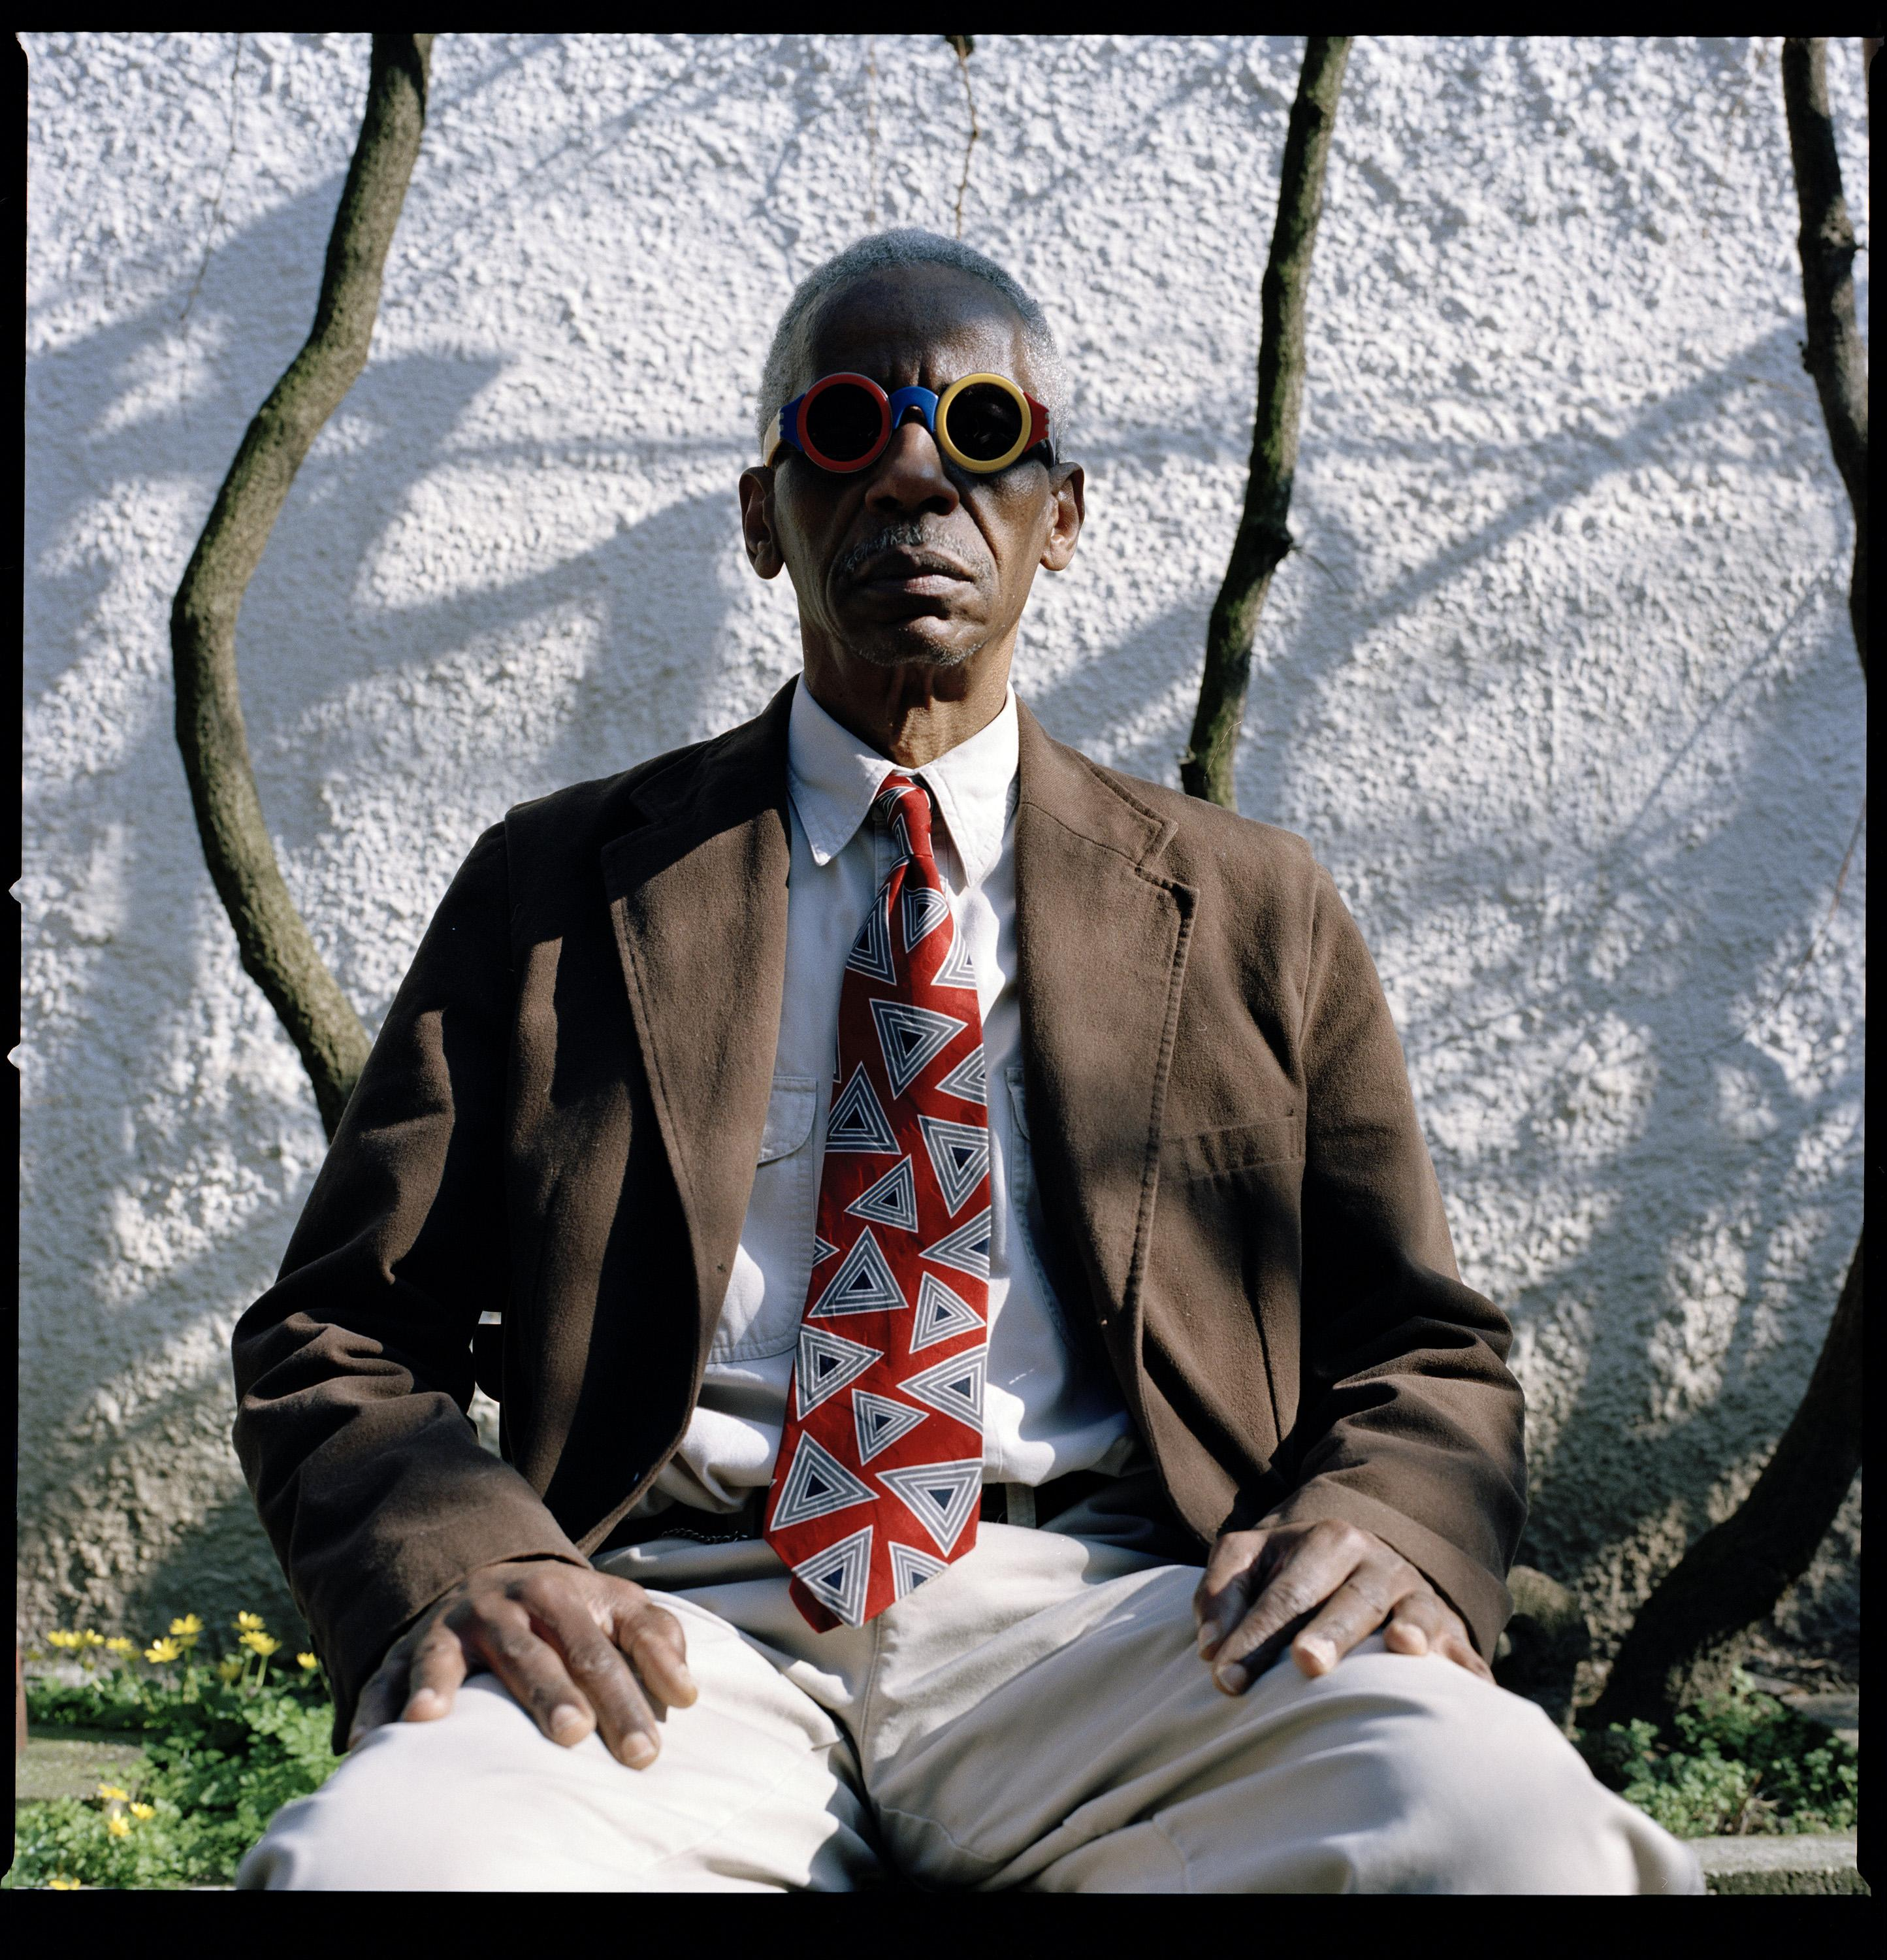 A photographic portrait shows a seated, dark-skinned man wearing a brown jacket, colorful sunglasses, and a boldly patterned tie.